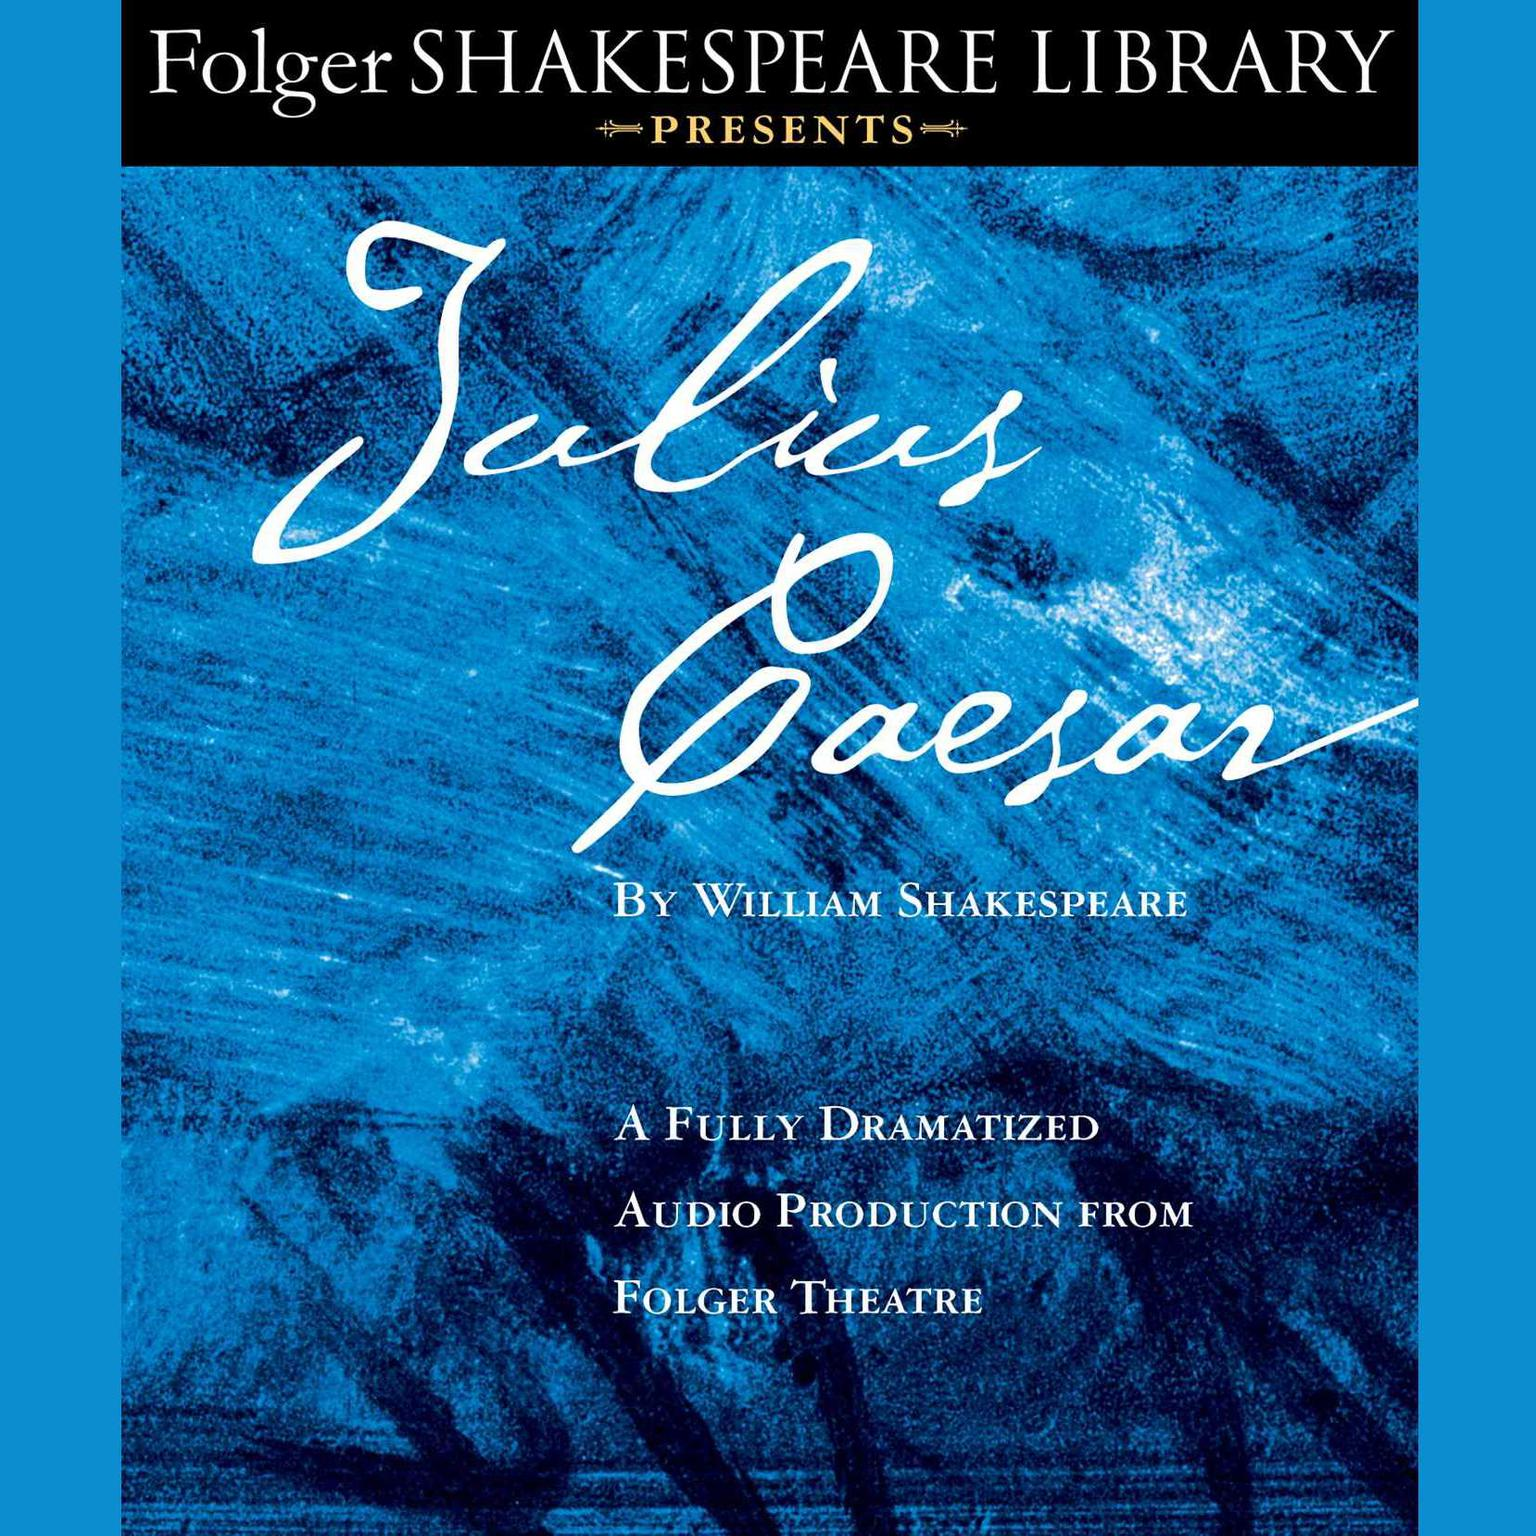 Printable Julius Caesar: Folger Shakespeare Library Presents Audiobook Cover Art